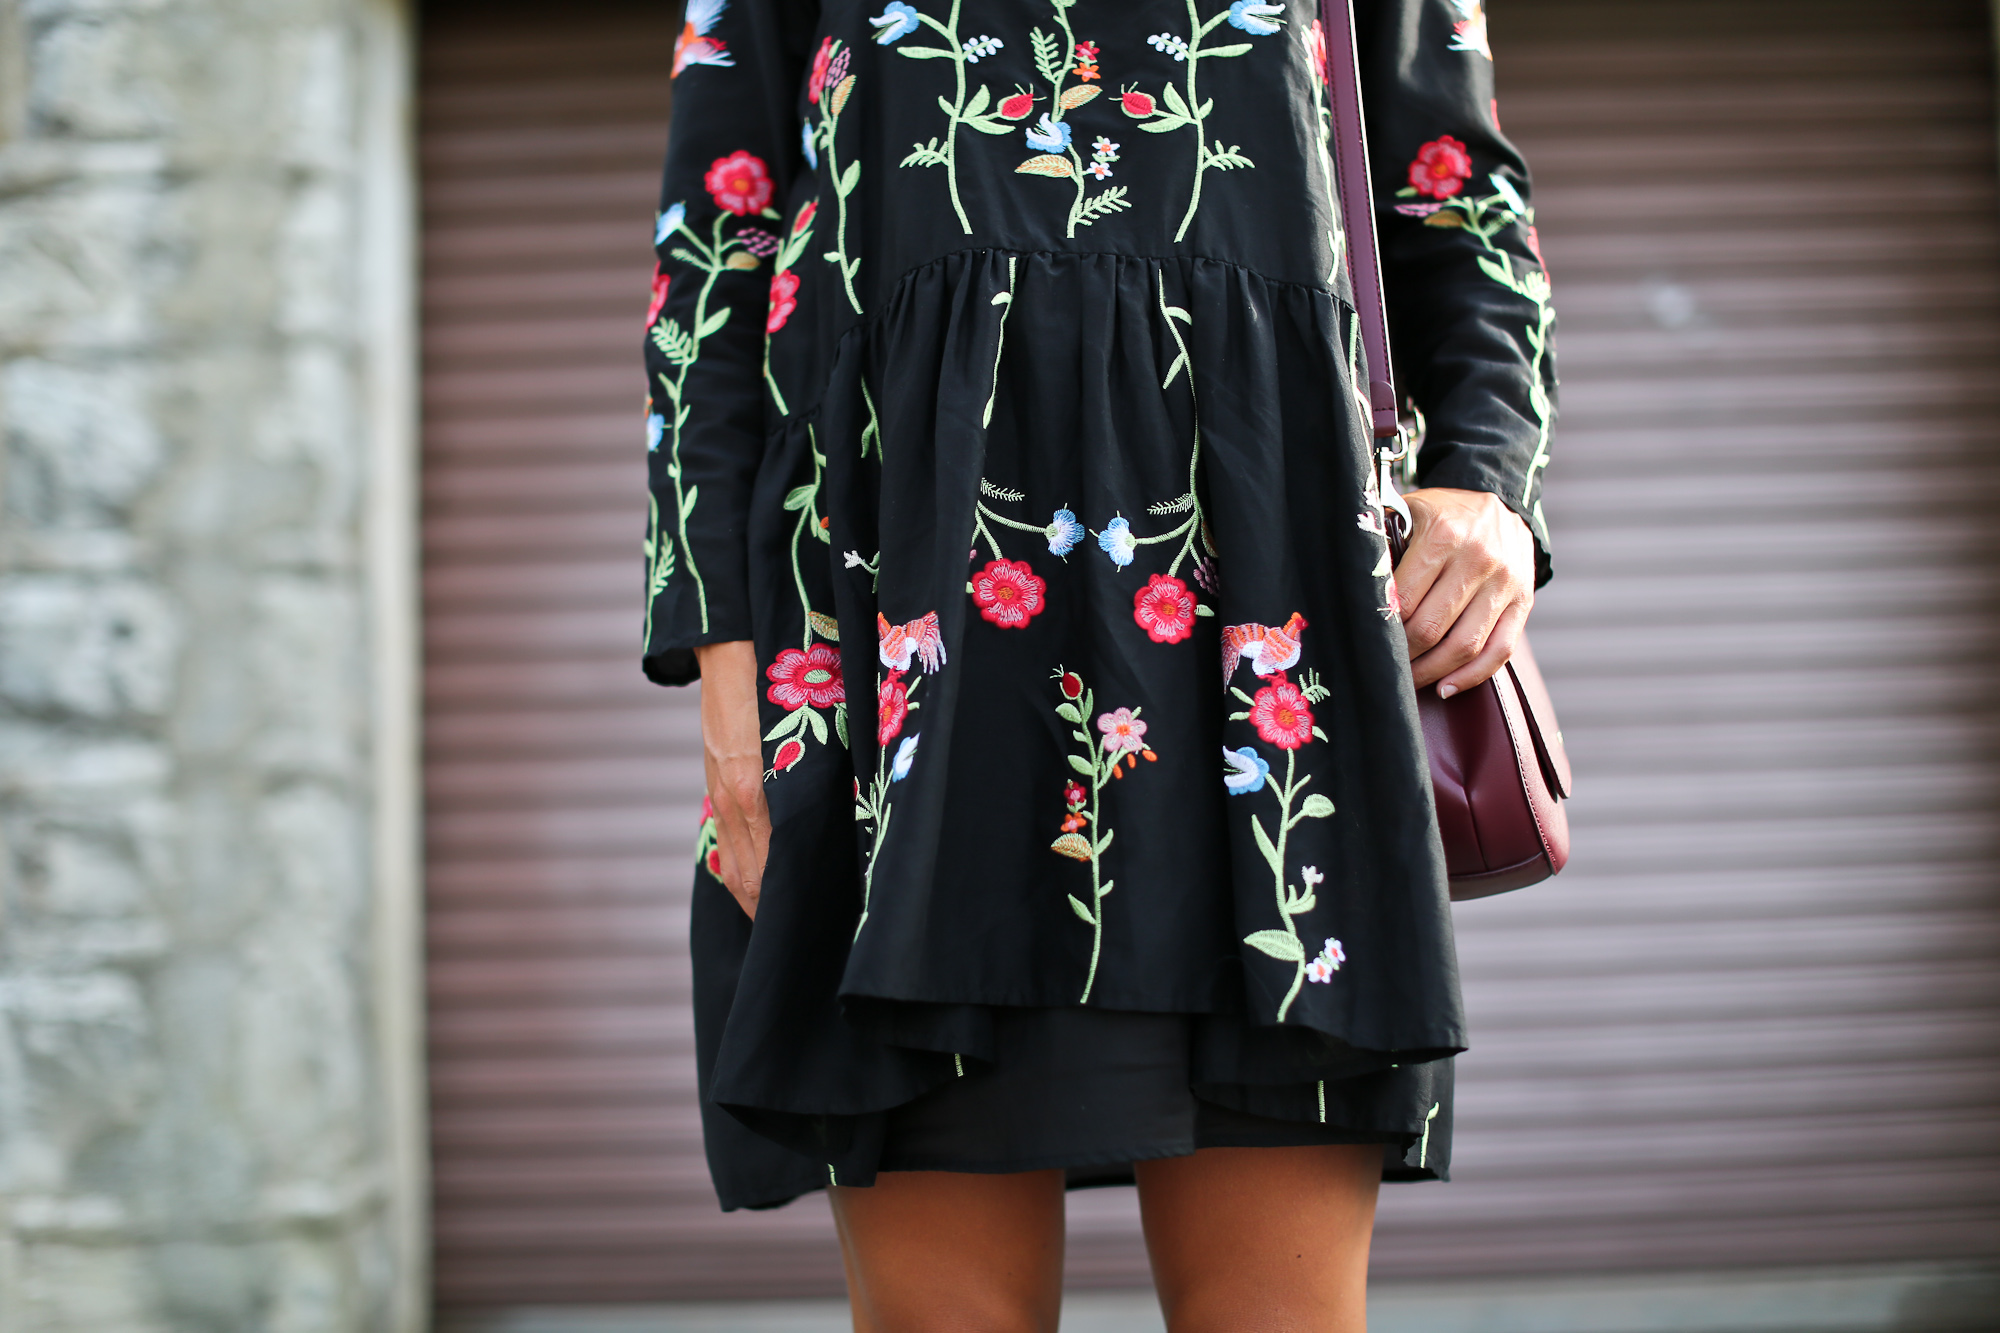 Clochet_streetstyle_zara_embroided_littleblackdress_purificaciongarcia_bandolera_westfalia-5